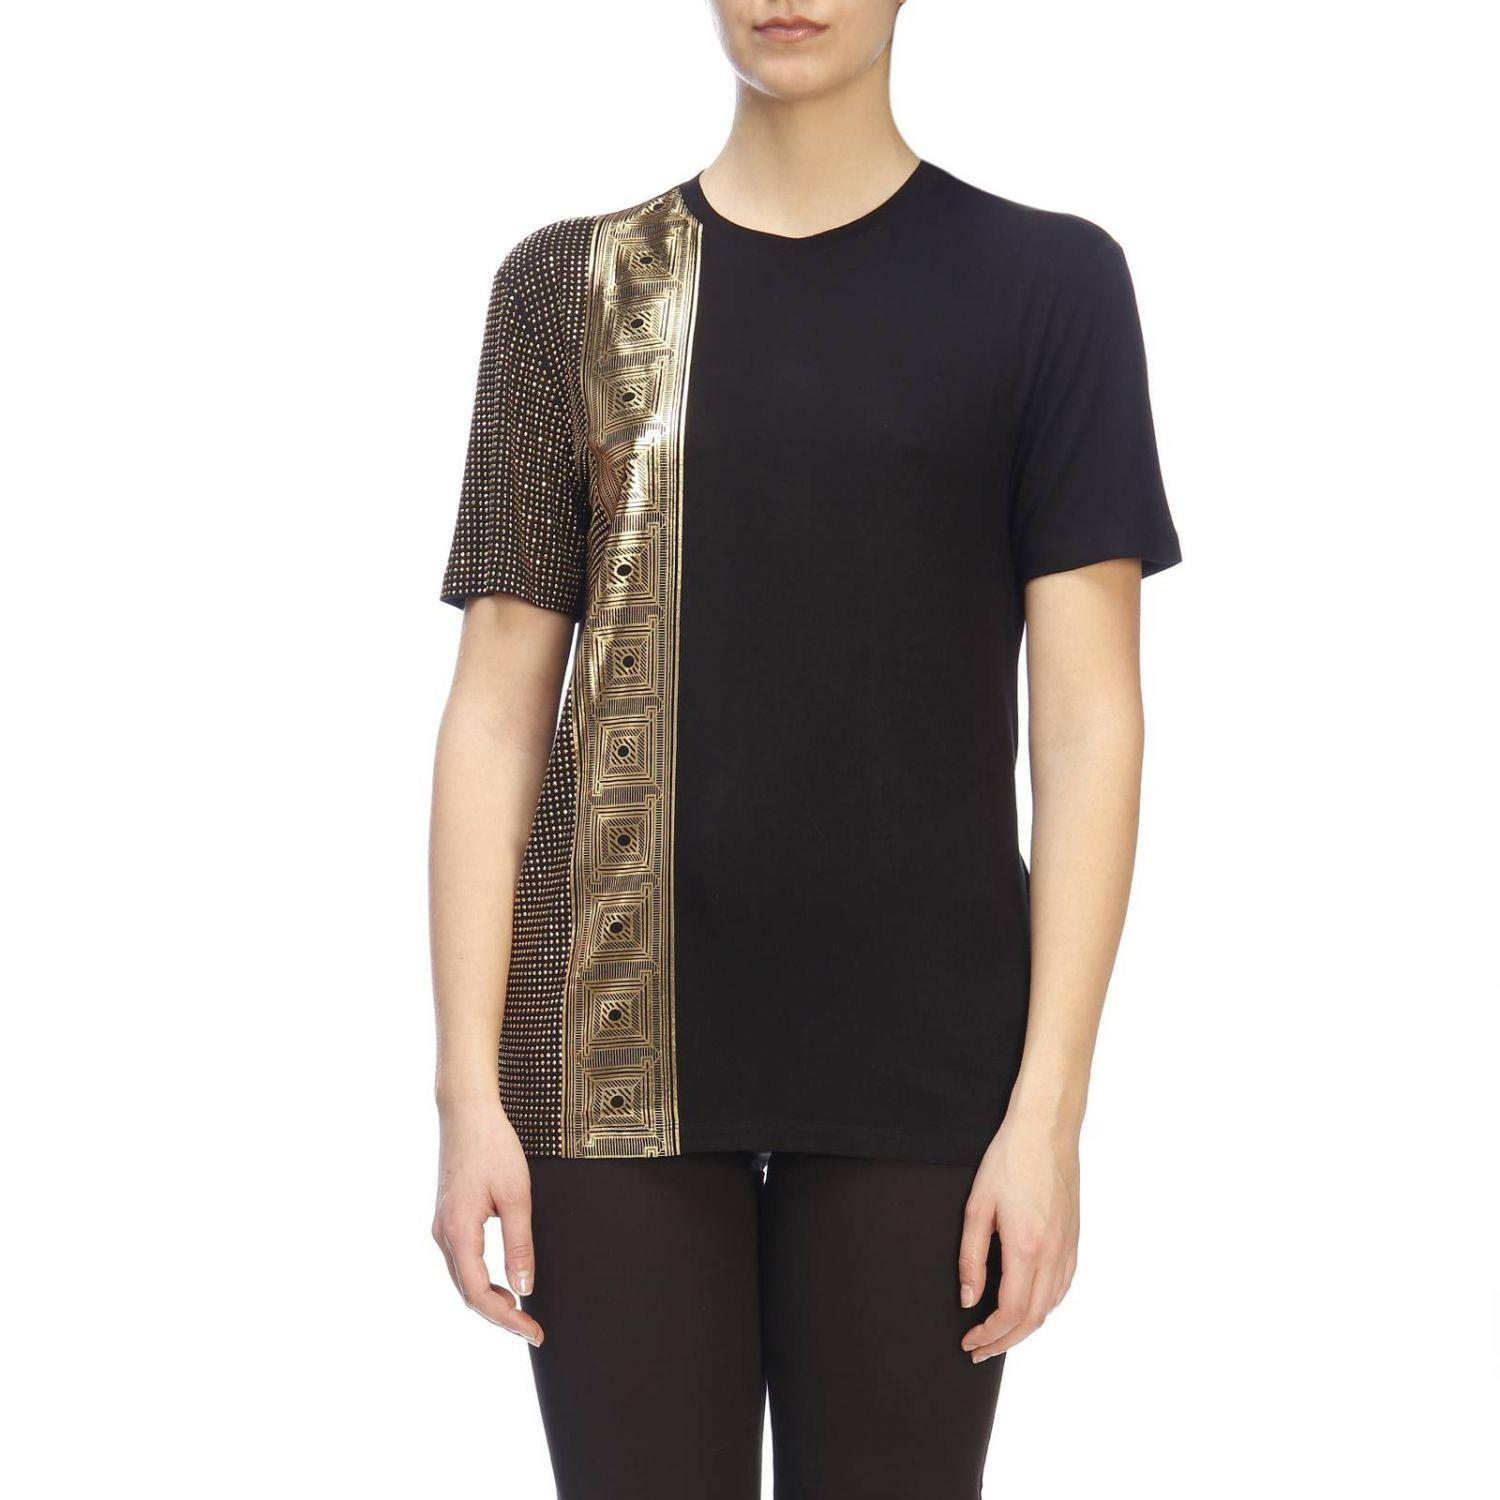 b321020ad587 Lyst - Versace T-shirt Women in Black